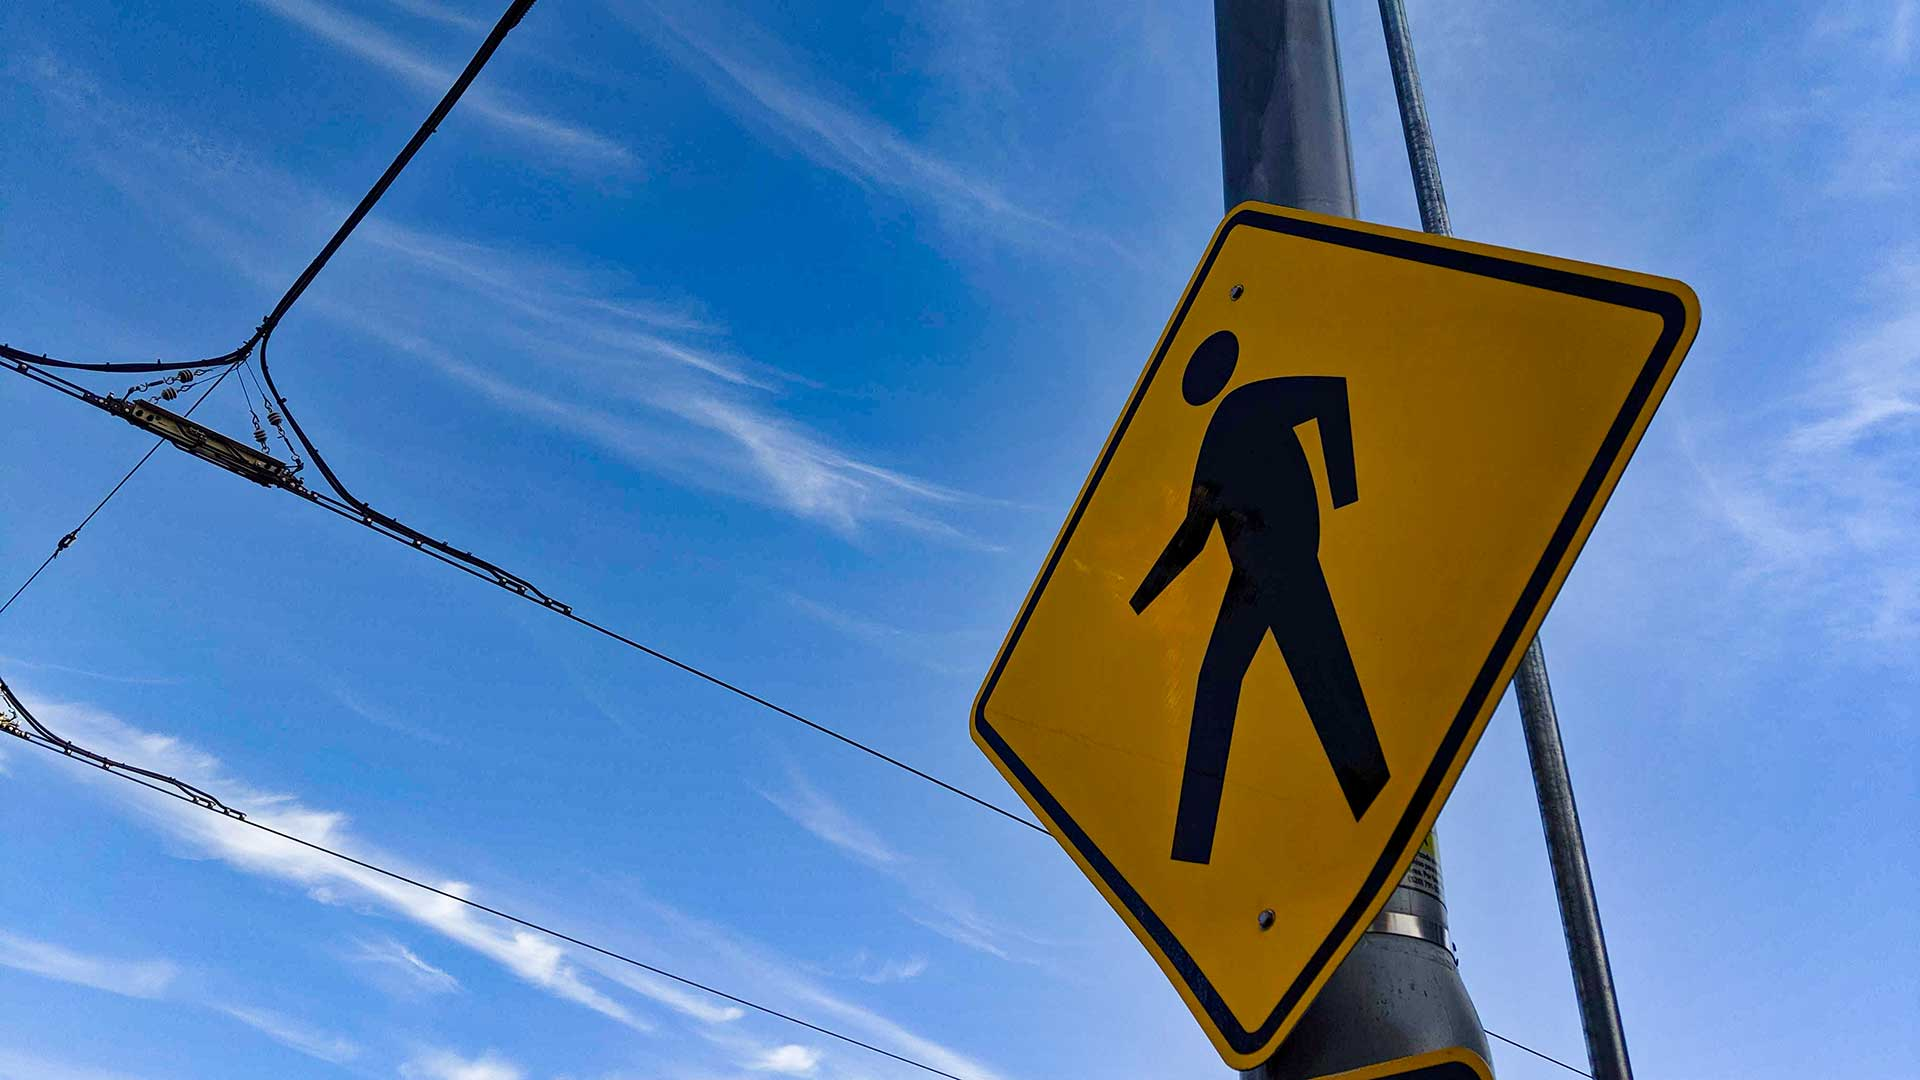 Revisiting the danger to pedestrians in Tucson